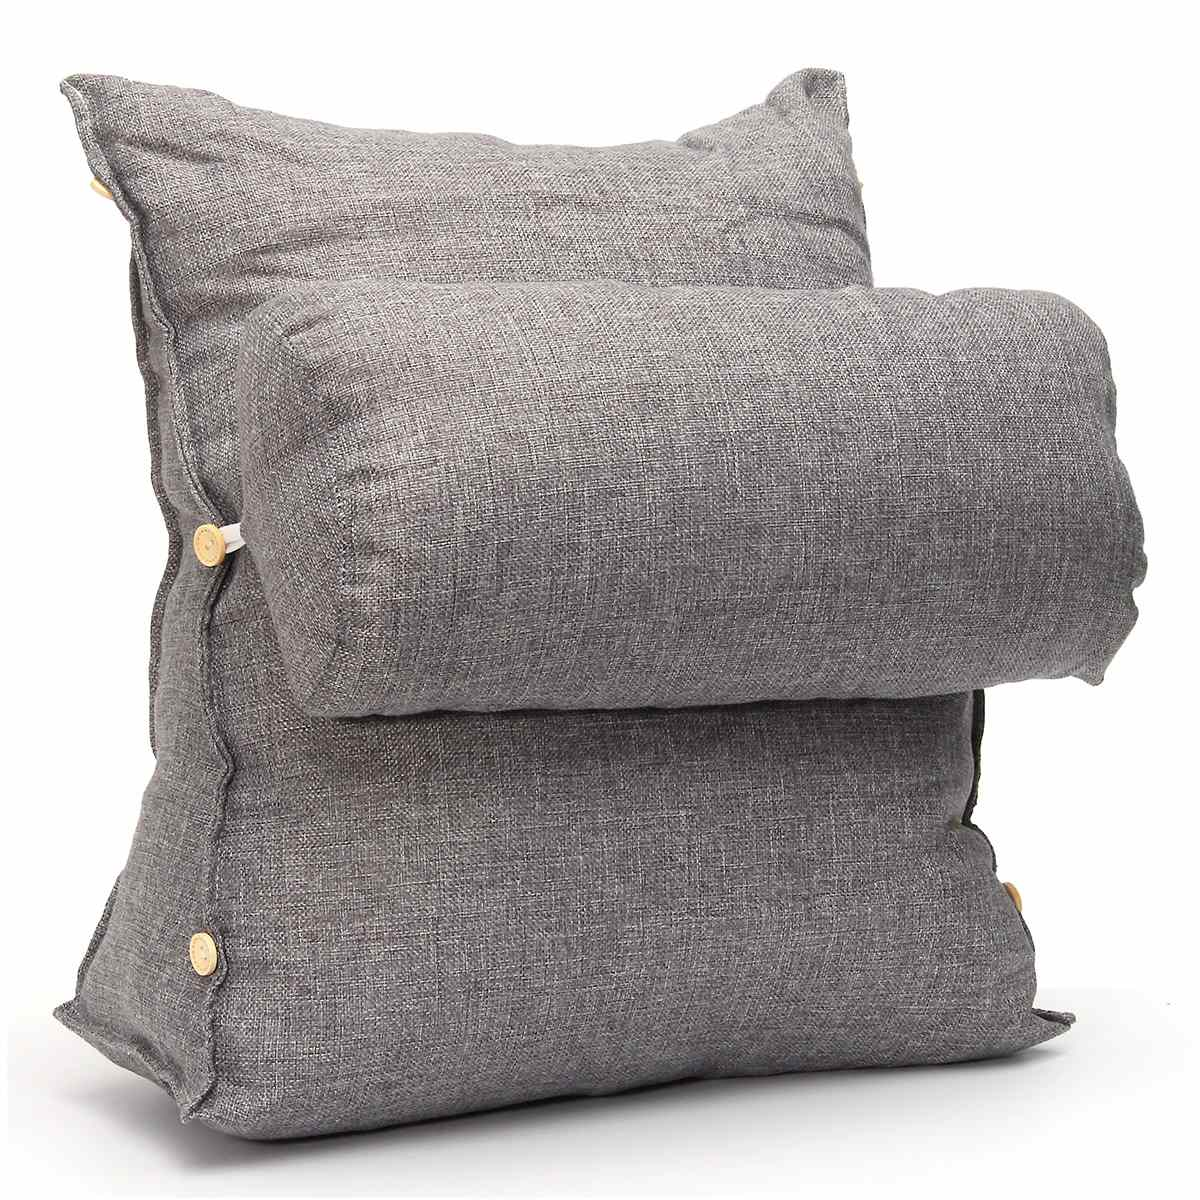 Bed chair pillow - Zippered Sofa Bed Pillow Chair Rest Neck Support Cushion Fip Pillow Lumbar Cervical Protection Cushion Pad